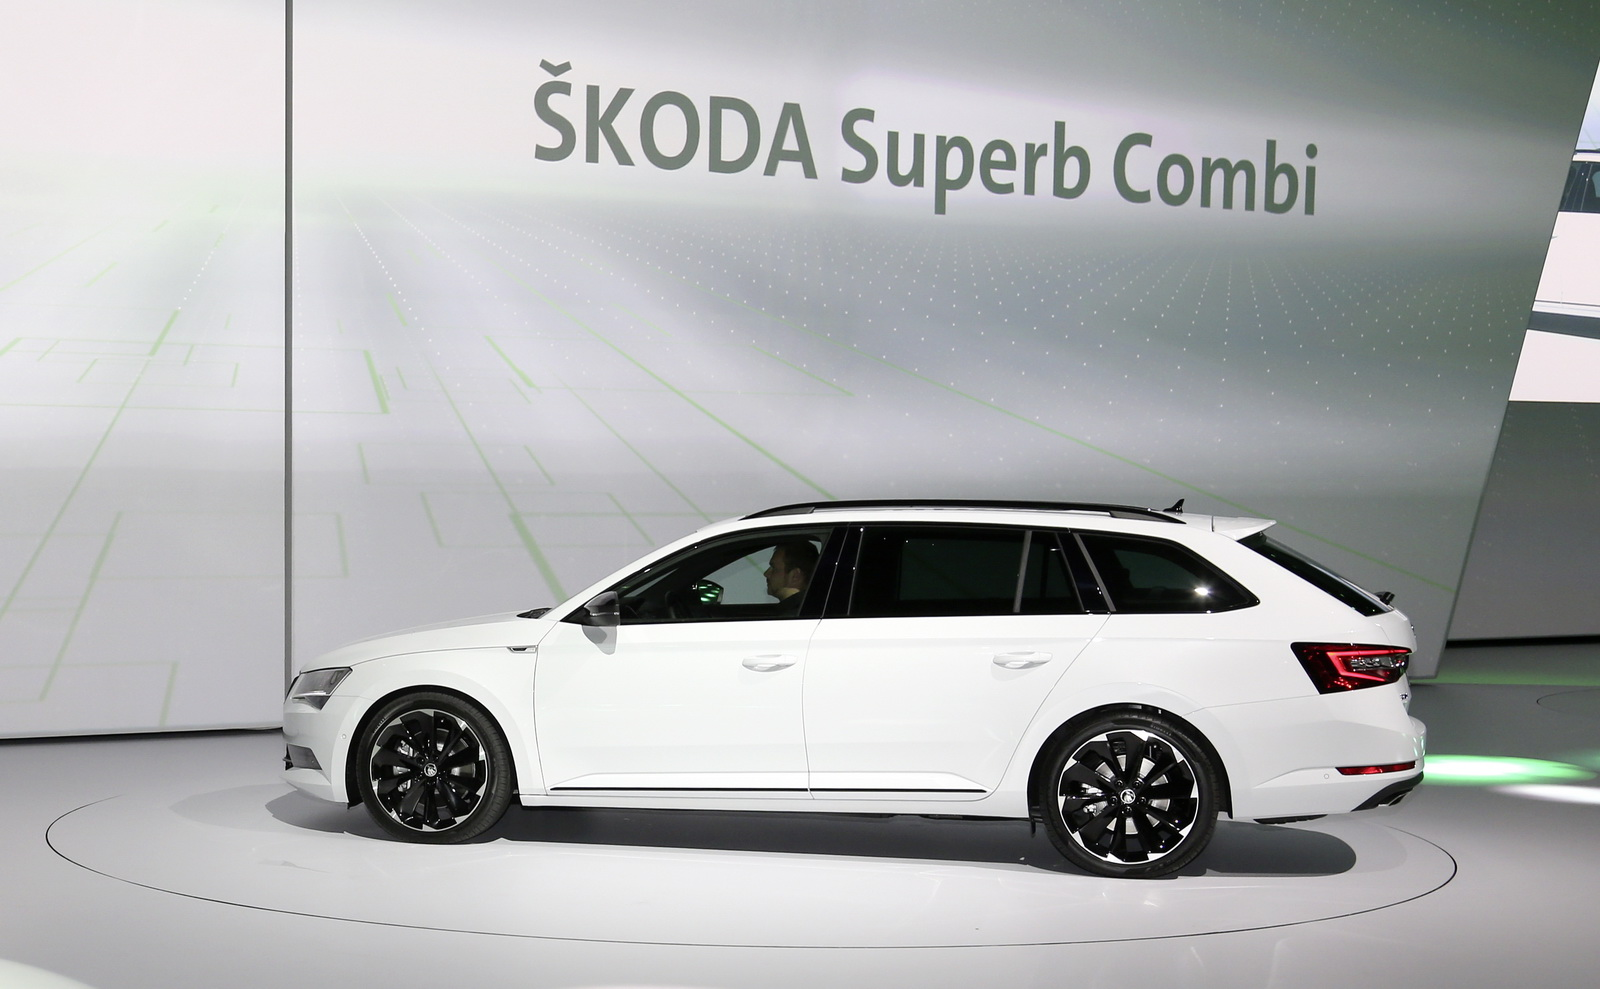 frankfurt 2015 skoda superb combi sportline 2016 live photos and video garage car. Black Bedroom Furniture Sets. Home Design Ideas